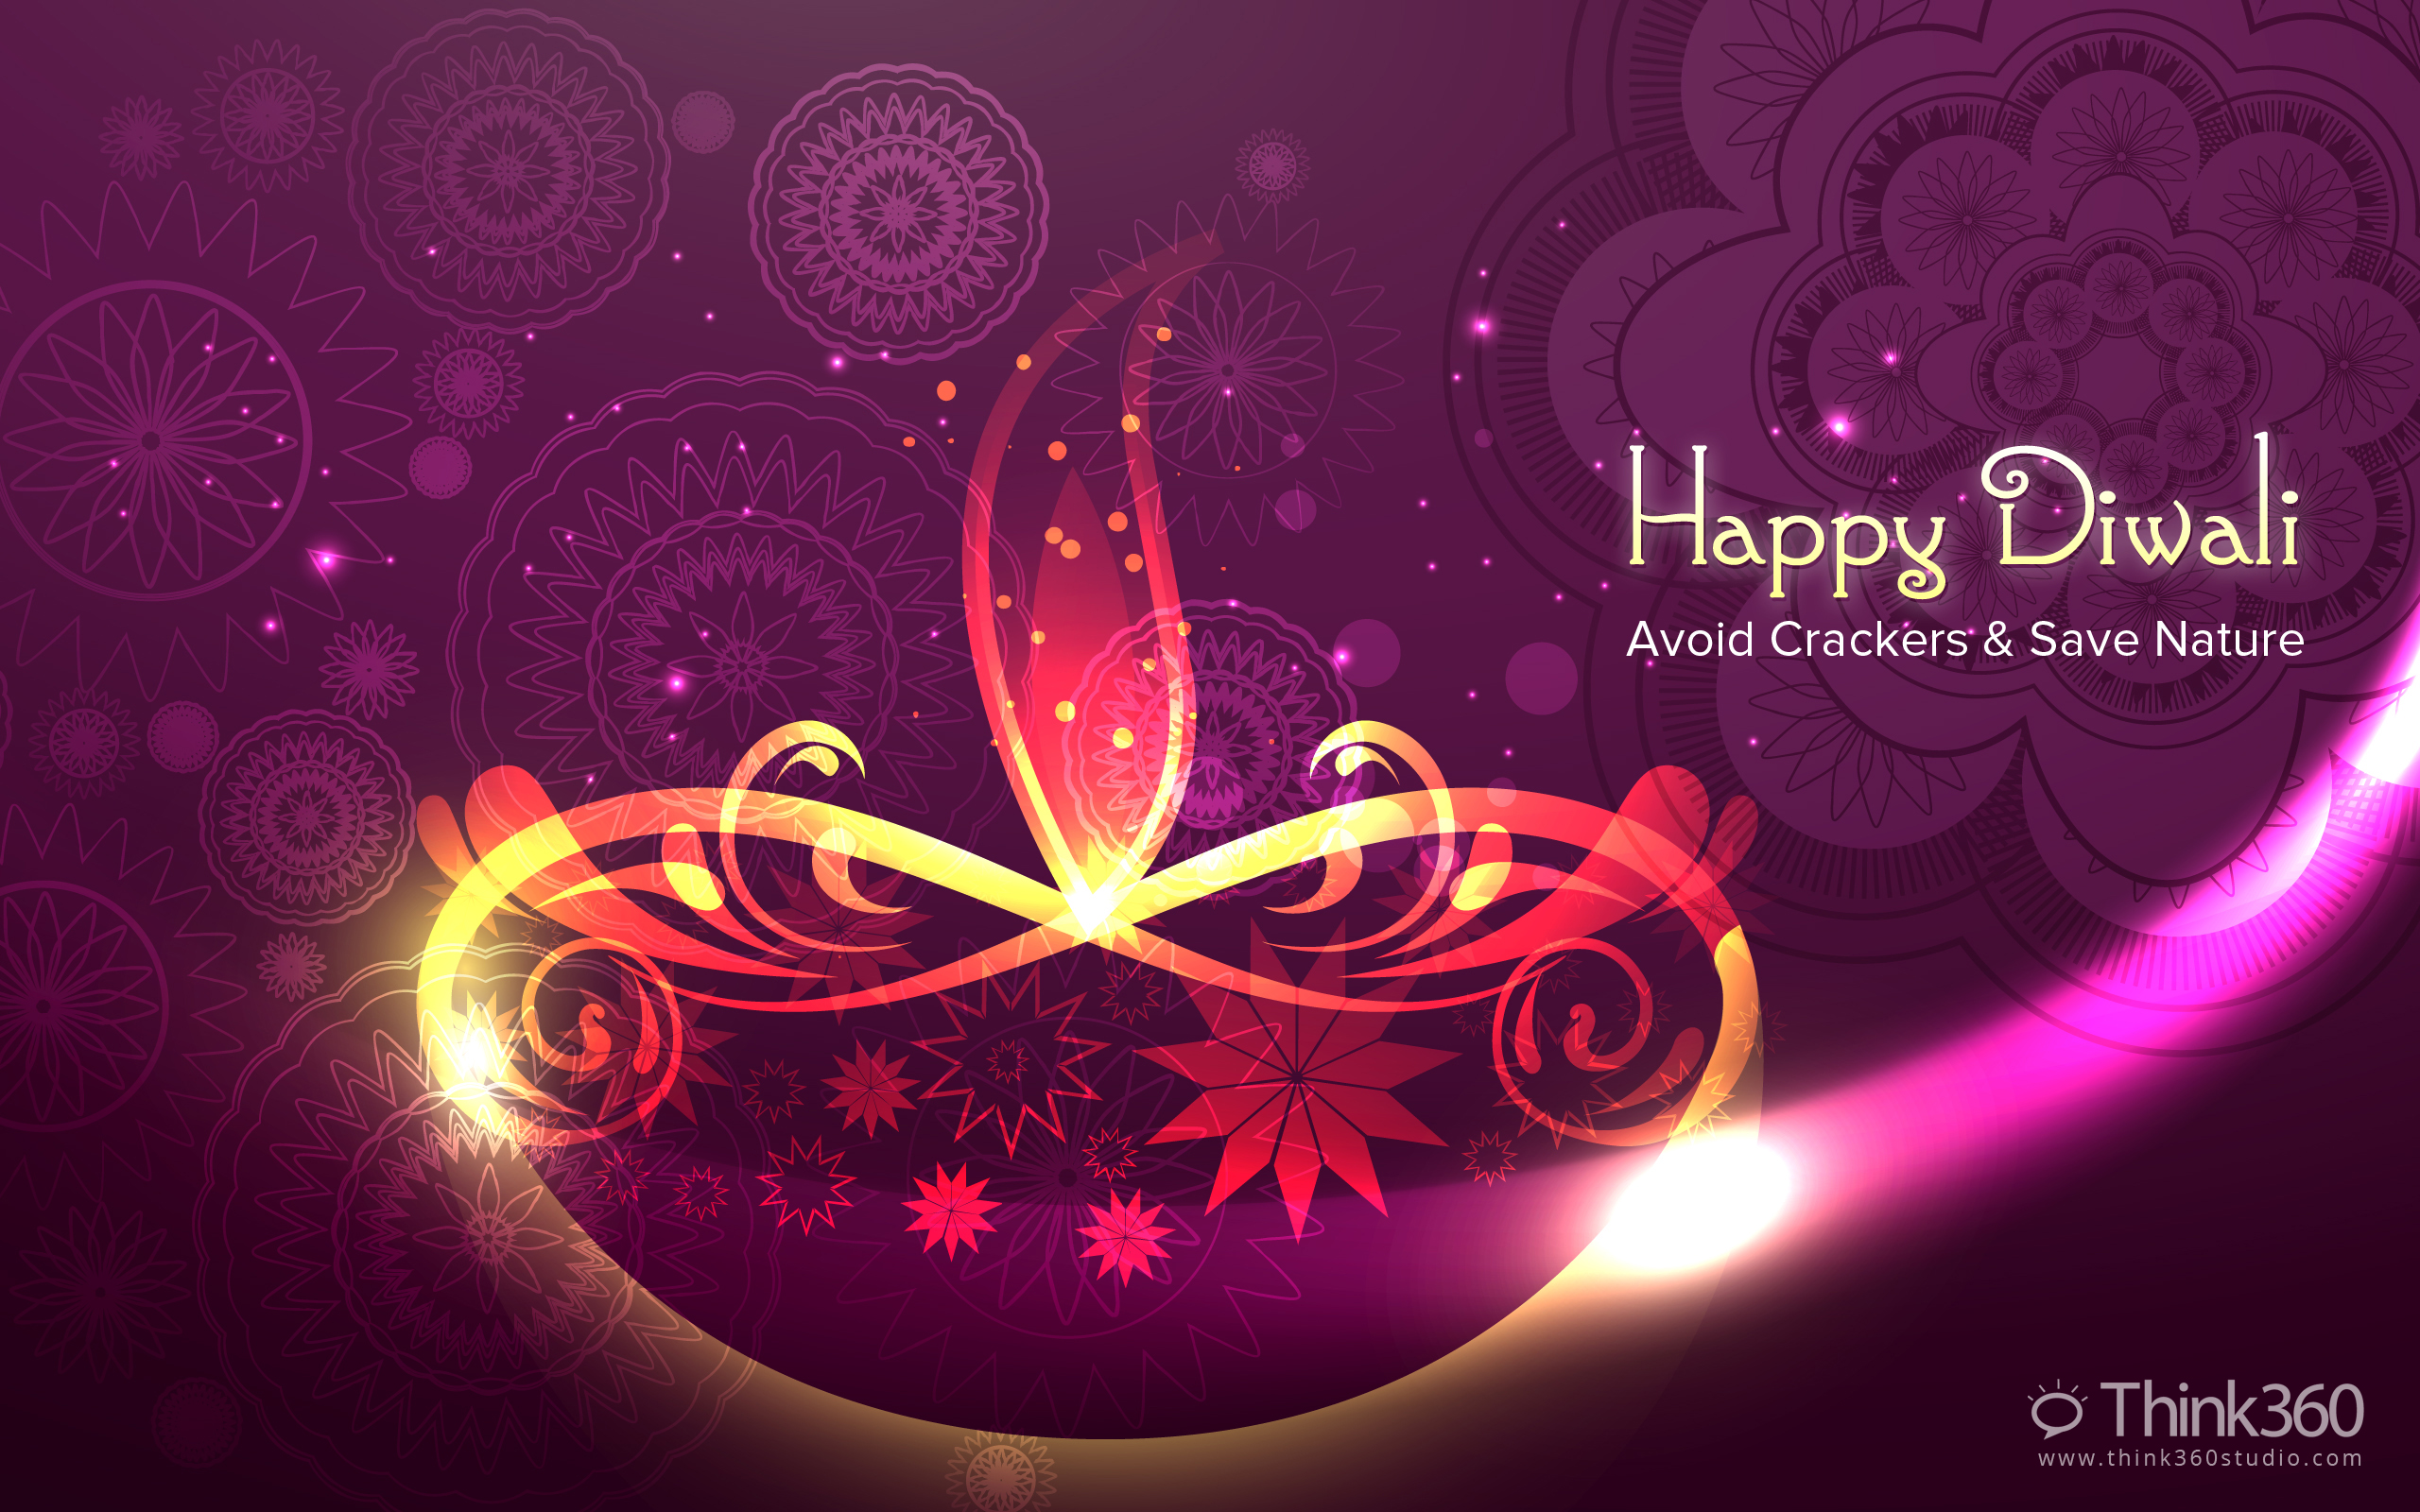 Happy diwali wallpaper pack 2013 by prince pal by princepal on happy diwali for widescreen 2560x1600 compatible with any smaller widescreen kristyandbryce Image collections